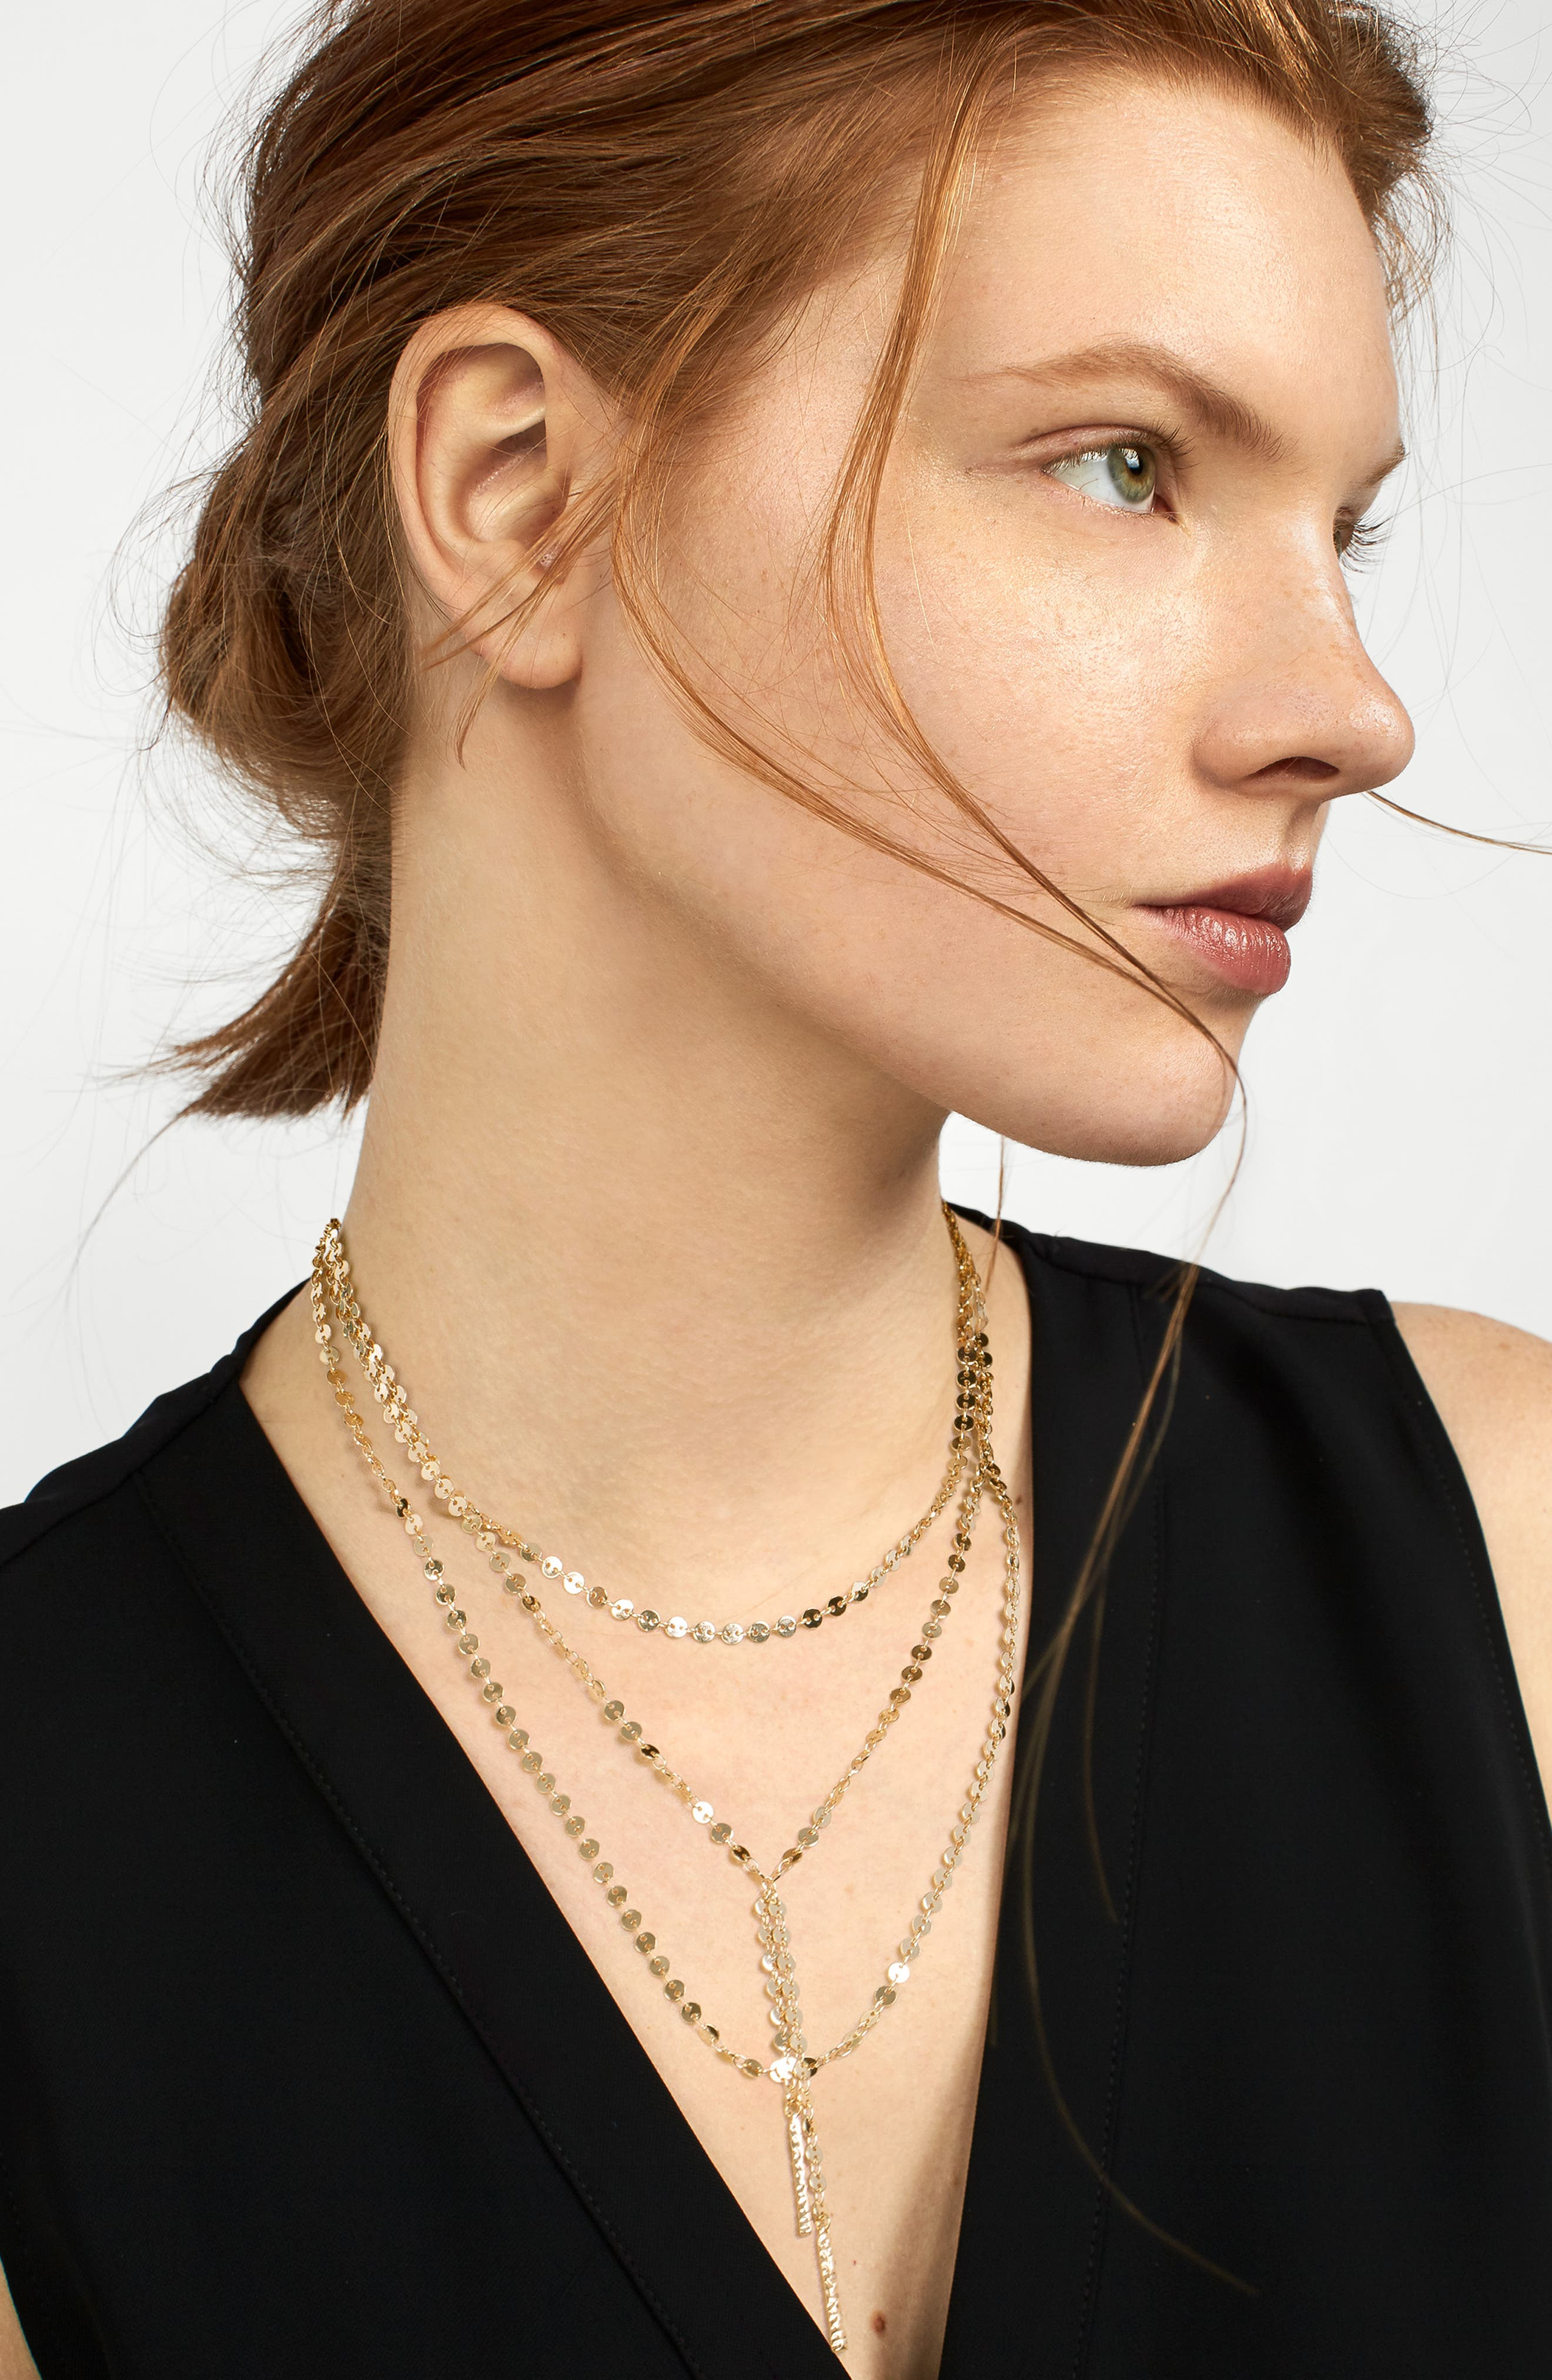 Amber Layered Chain Y-Necklace,                             Alternate thumbnail 3, color,                             GOLD